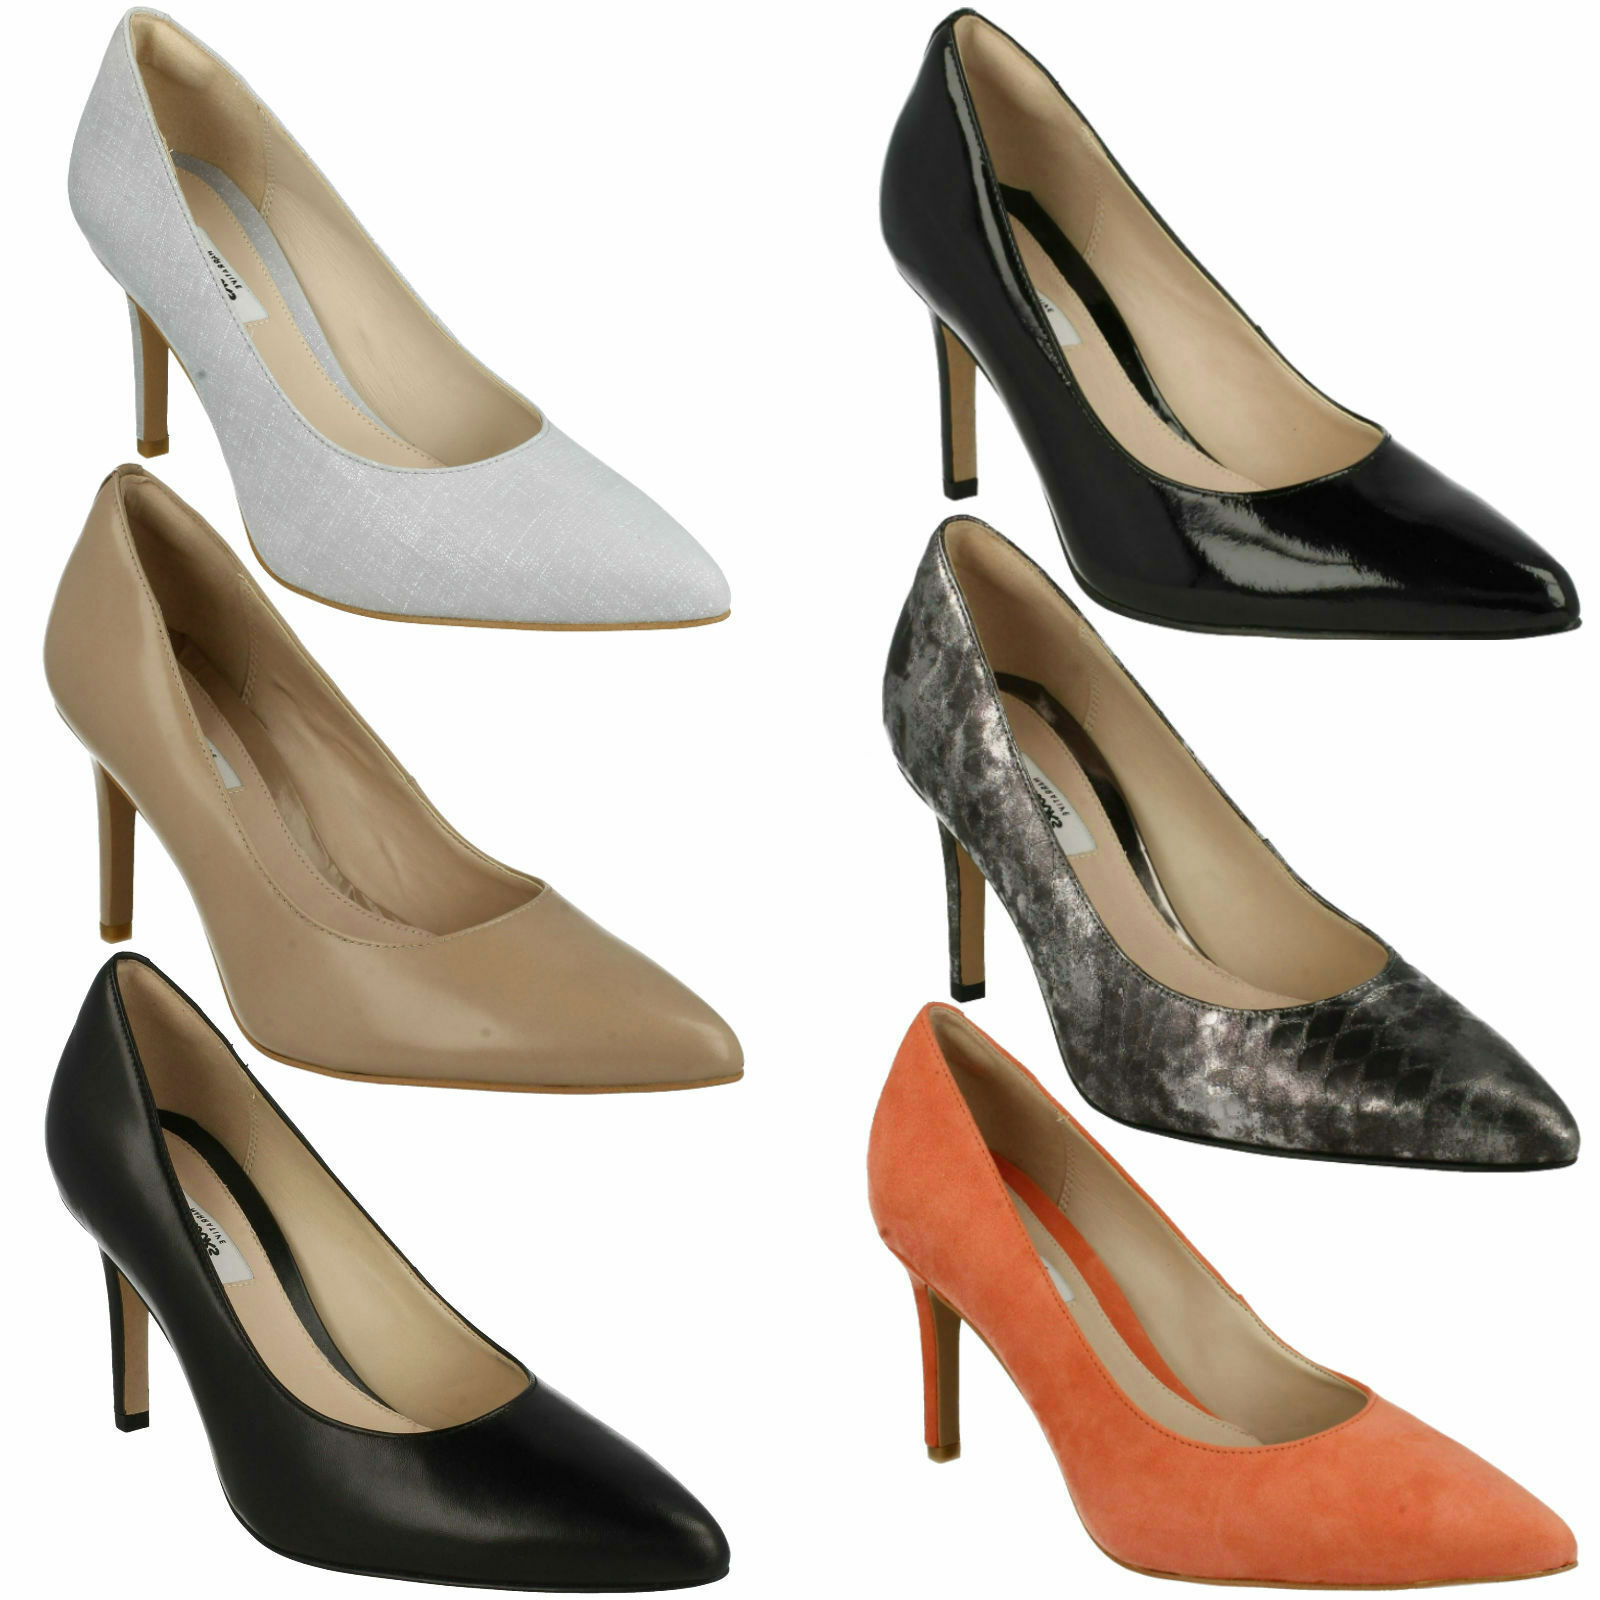 Dinah Keer Damen Clarks Stiletto ohne Bügel spitz zulaufend Kleid Pumps